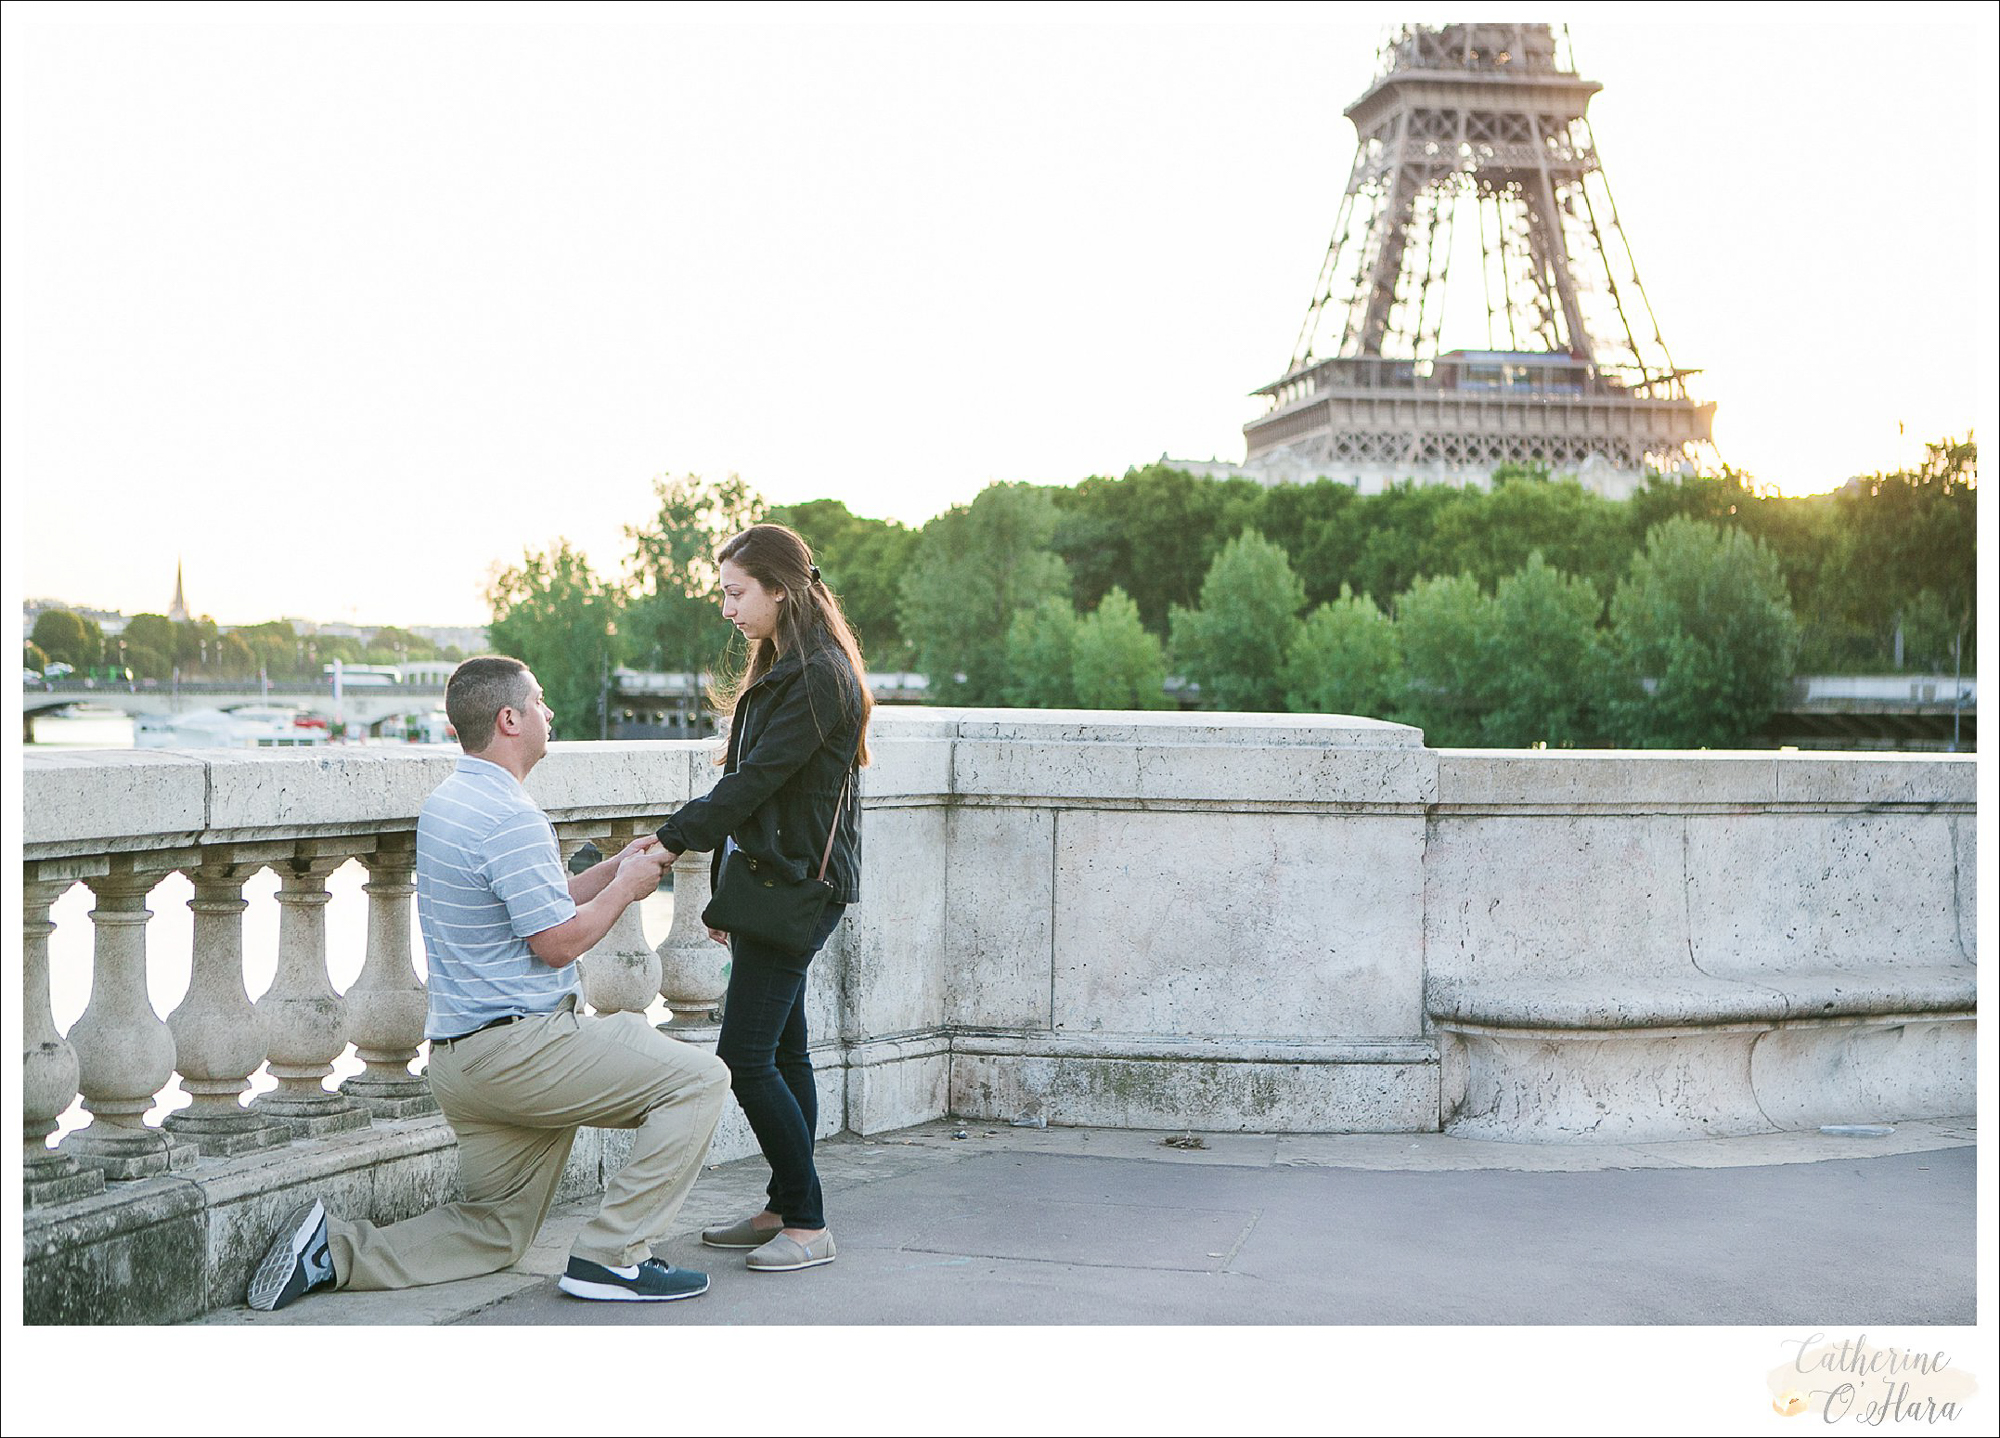 surprise proposal engagement photographer paris france-15.jpg